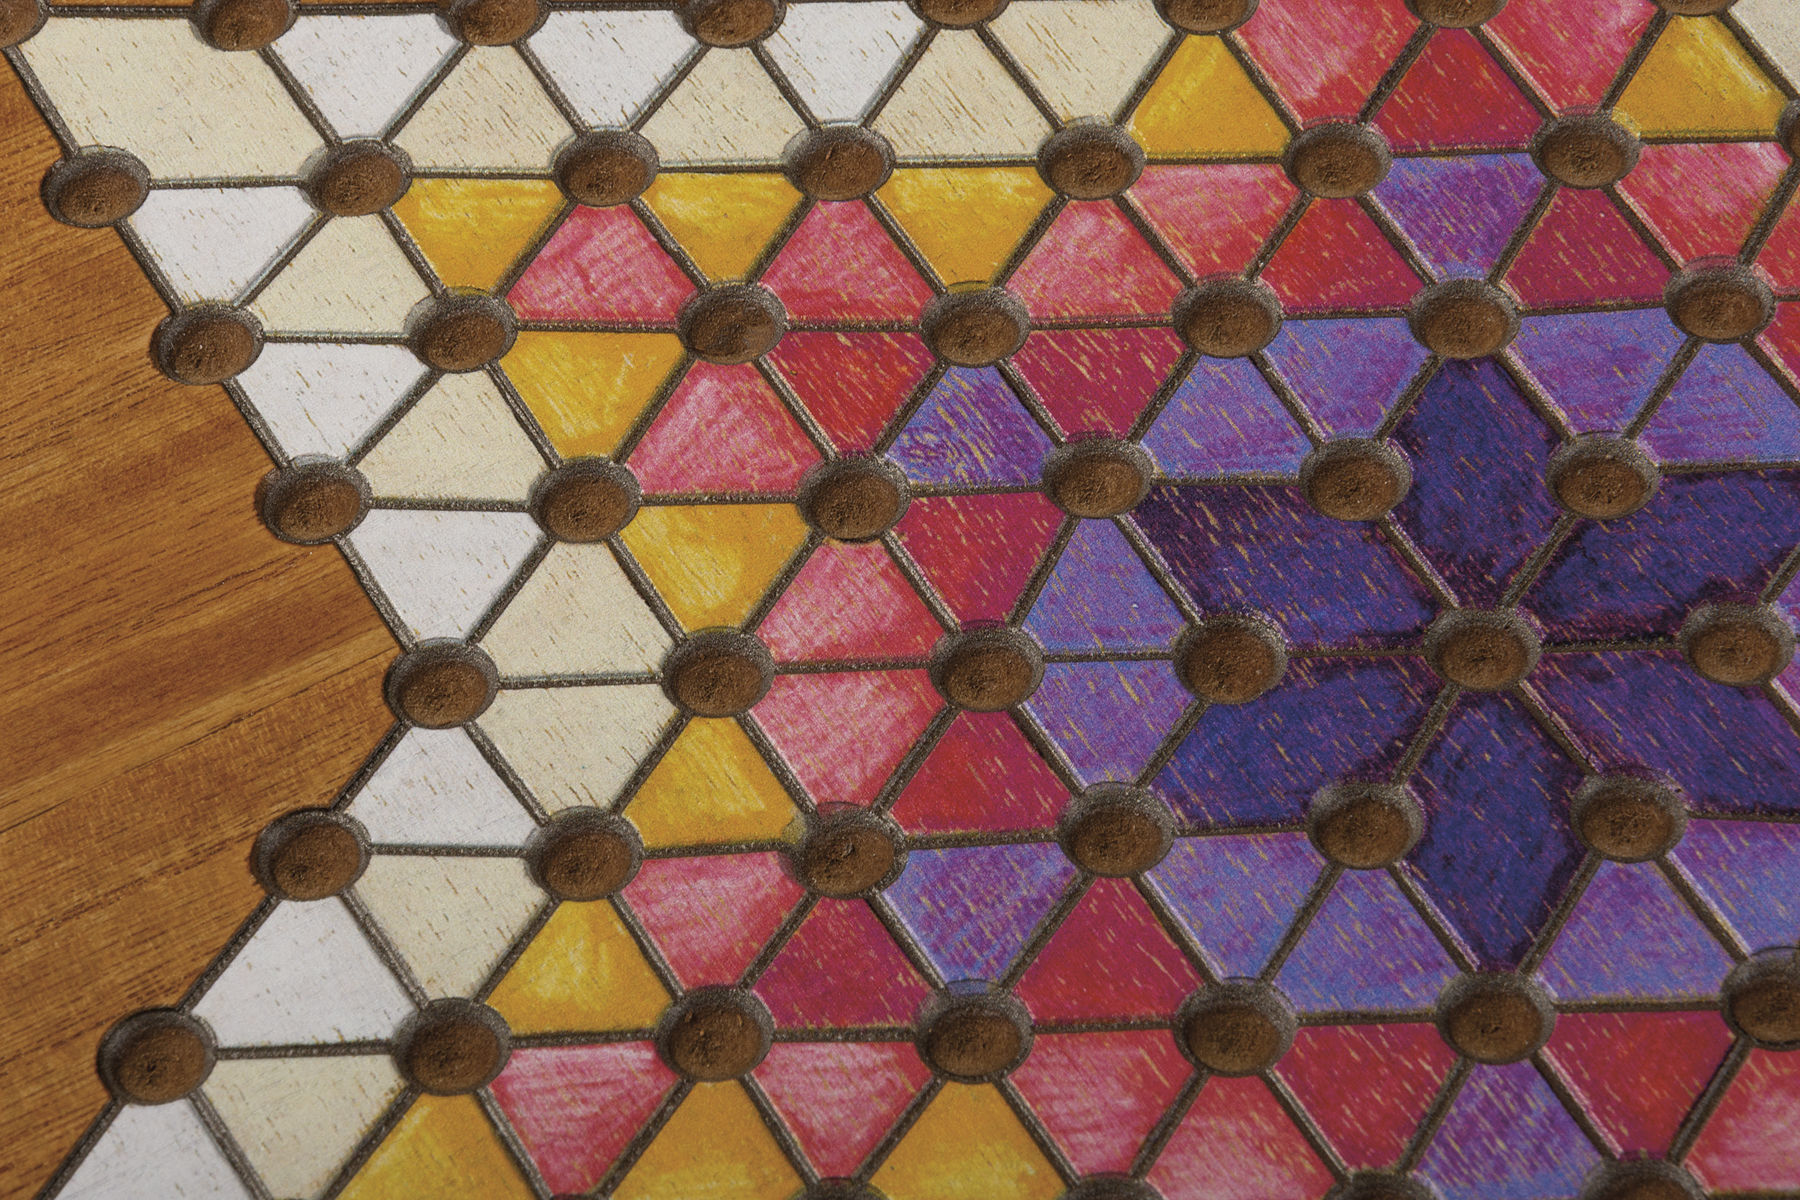 Chinese Checkers Wall Game by Primitives by Kathy